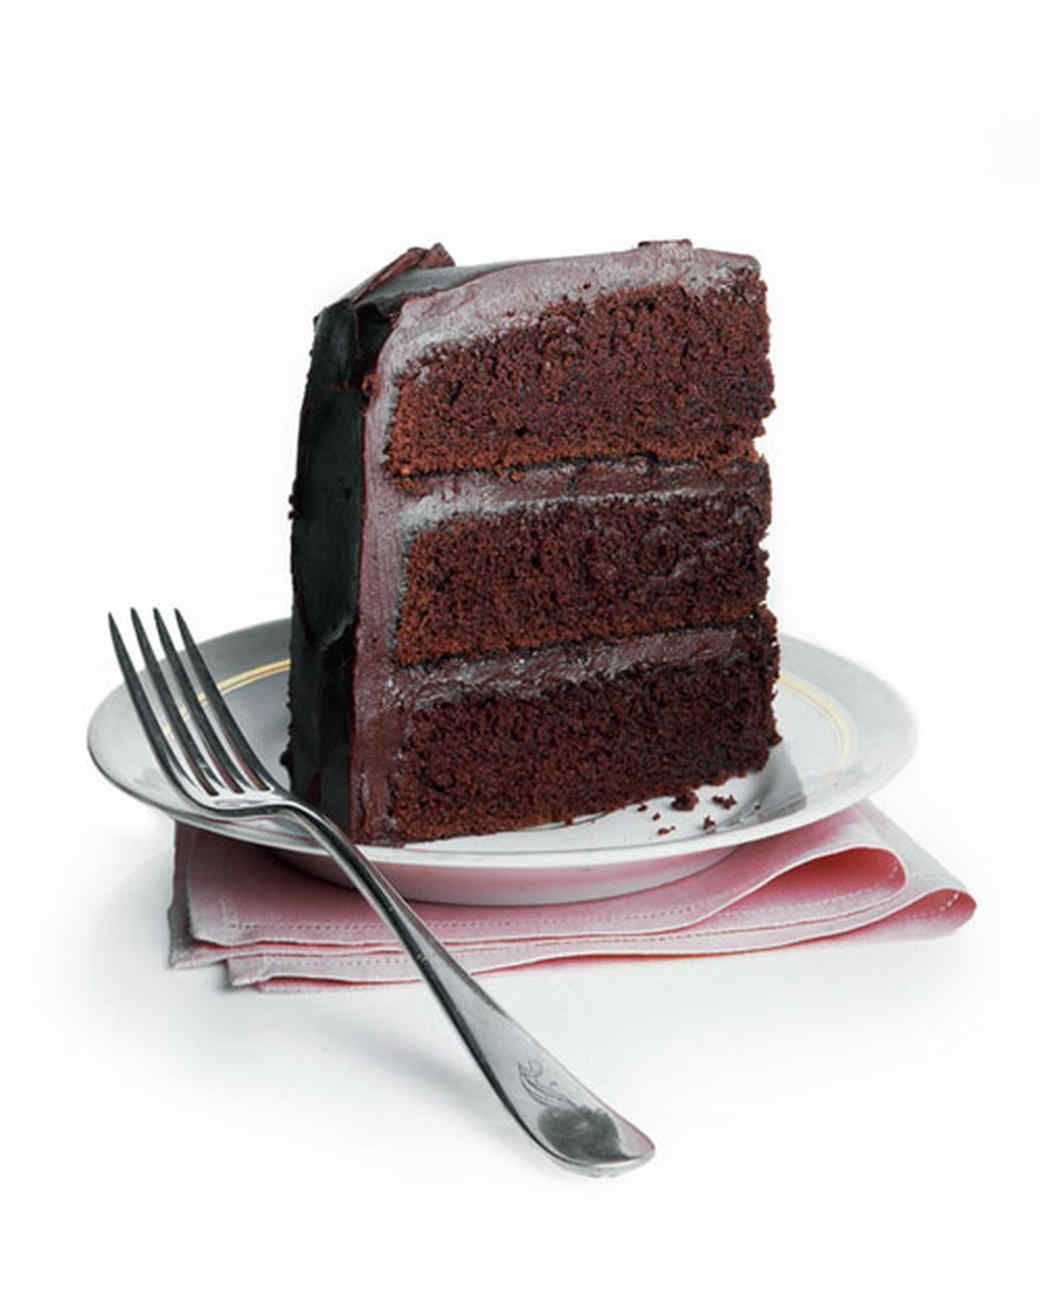 This recipe for Mrs. Milman's Chocolate Frosting is one of our all-time favorites. Make it with our recipe for Moist Devil's Food Cake.